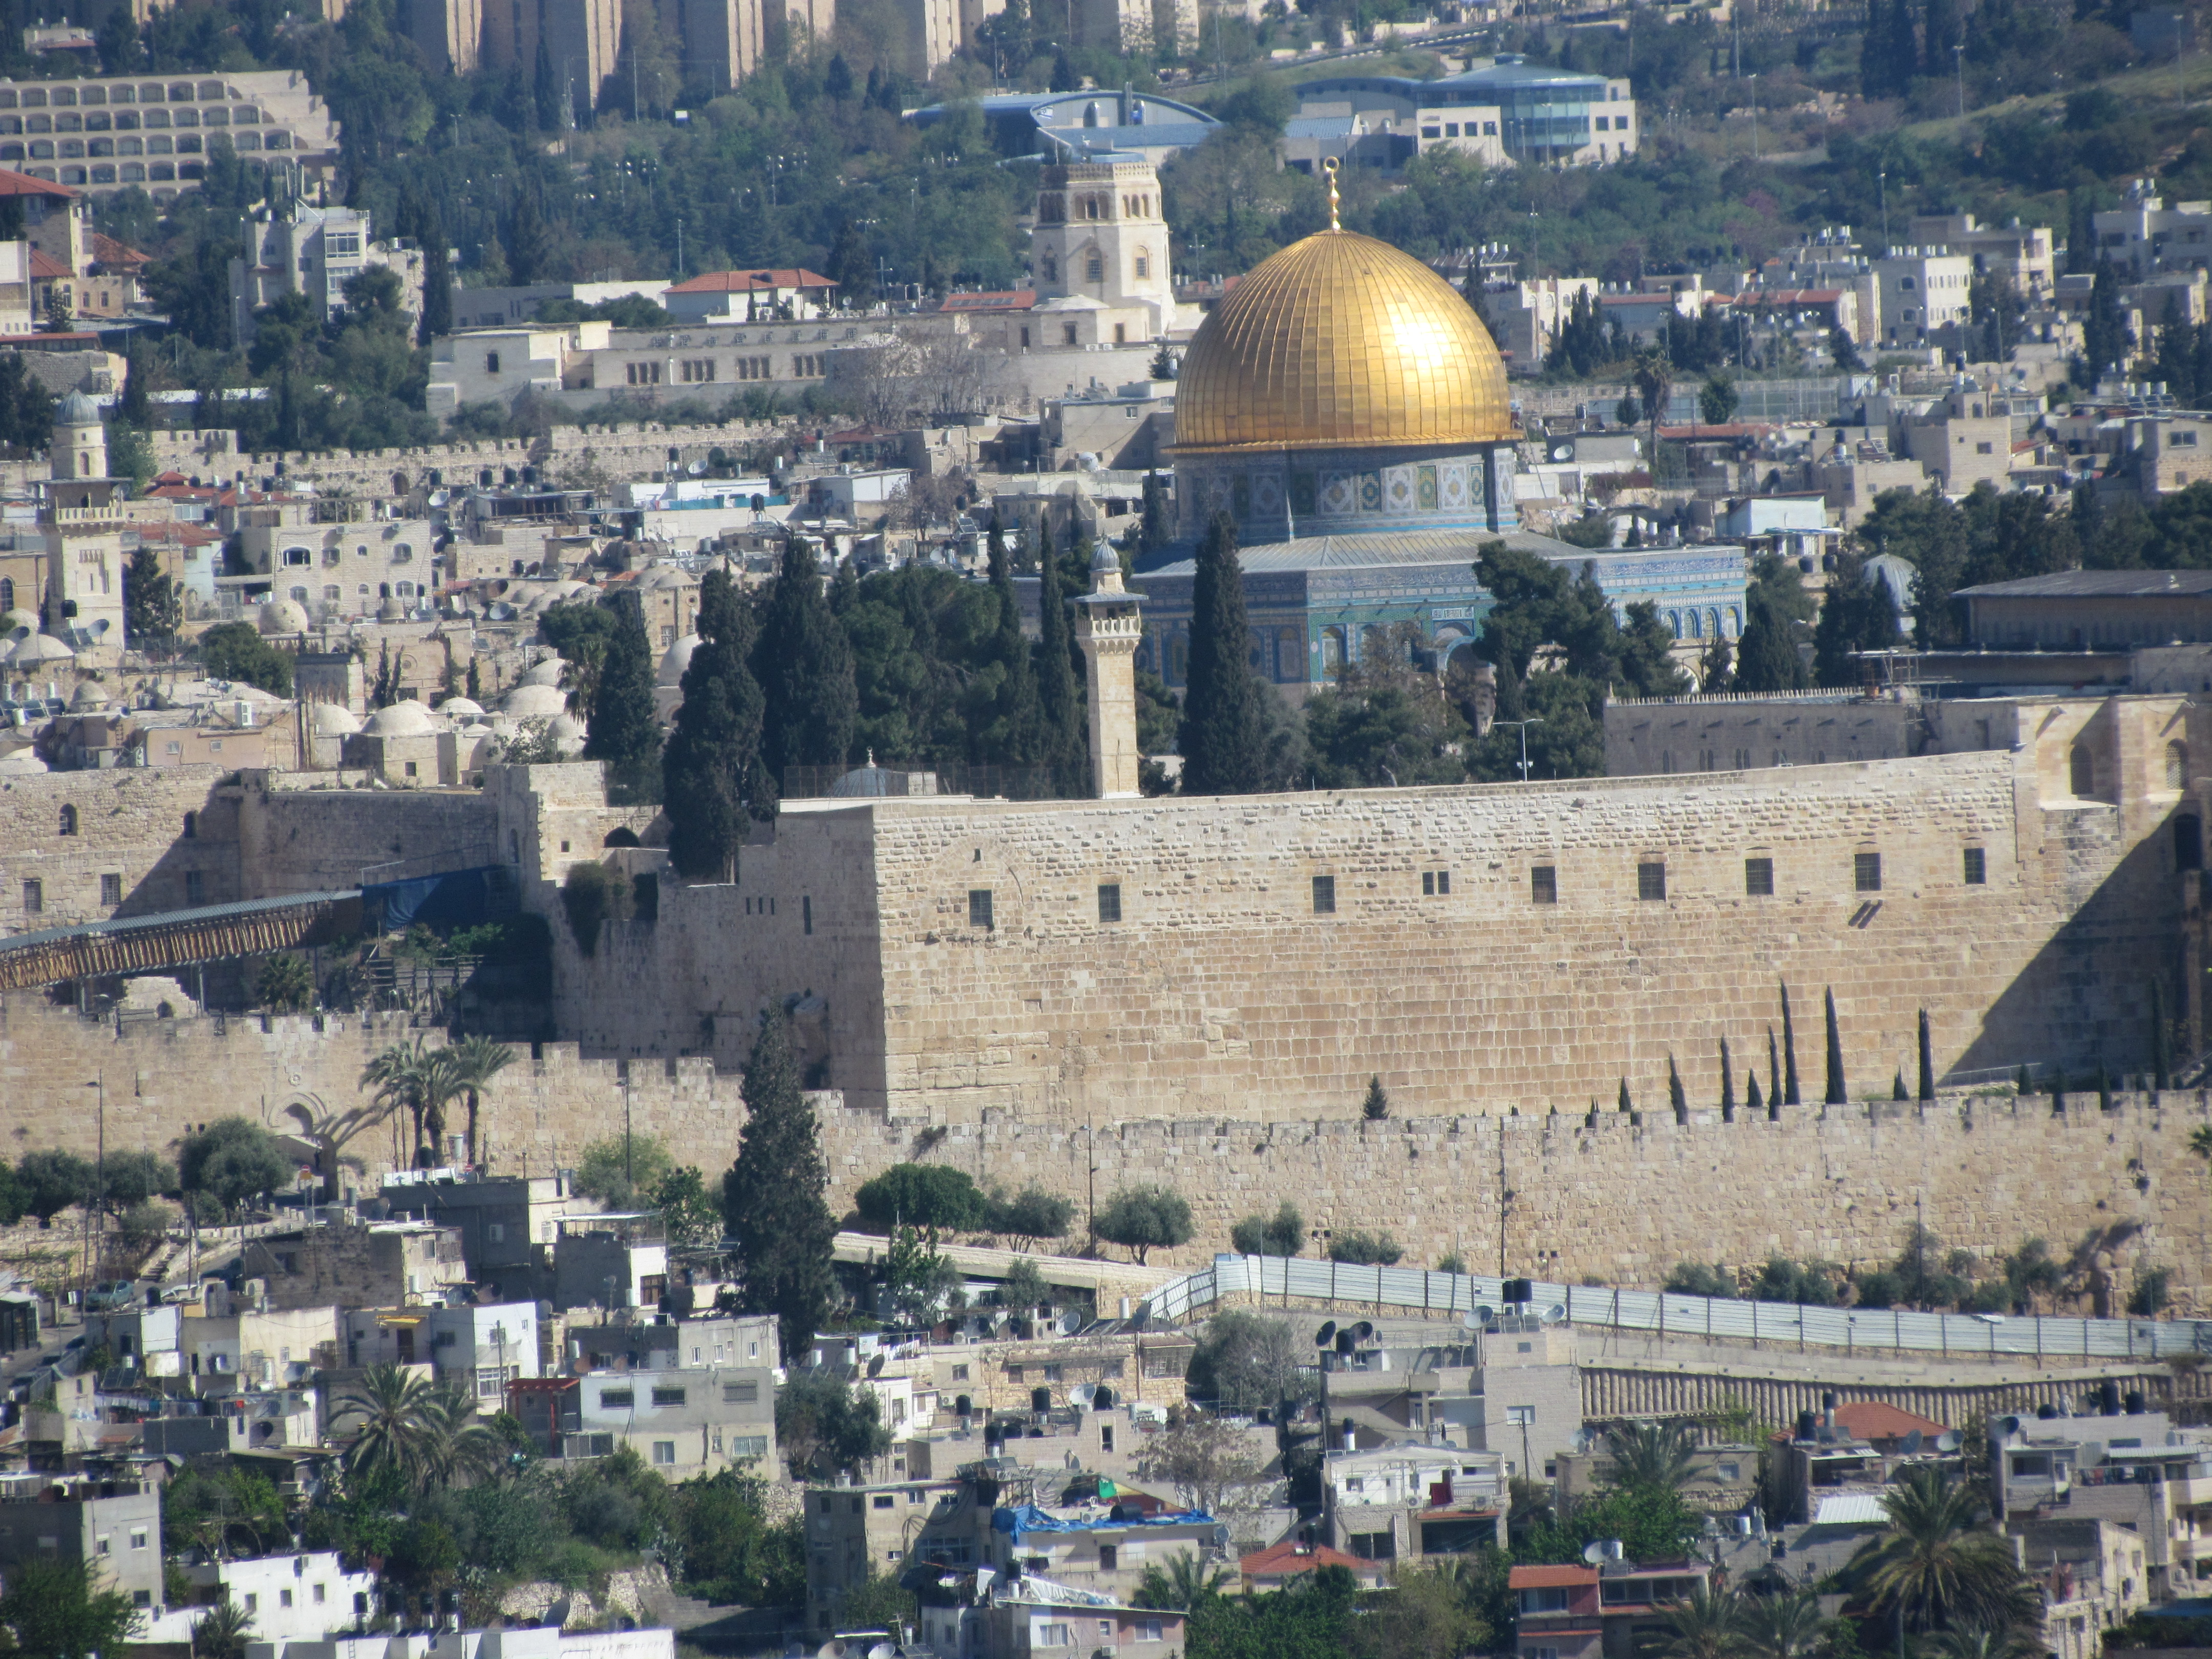 Why I wanted to Visit Israel